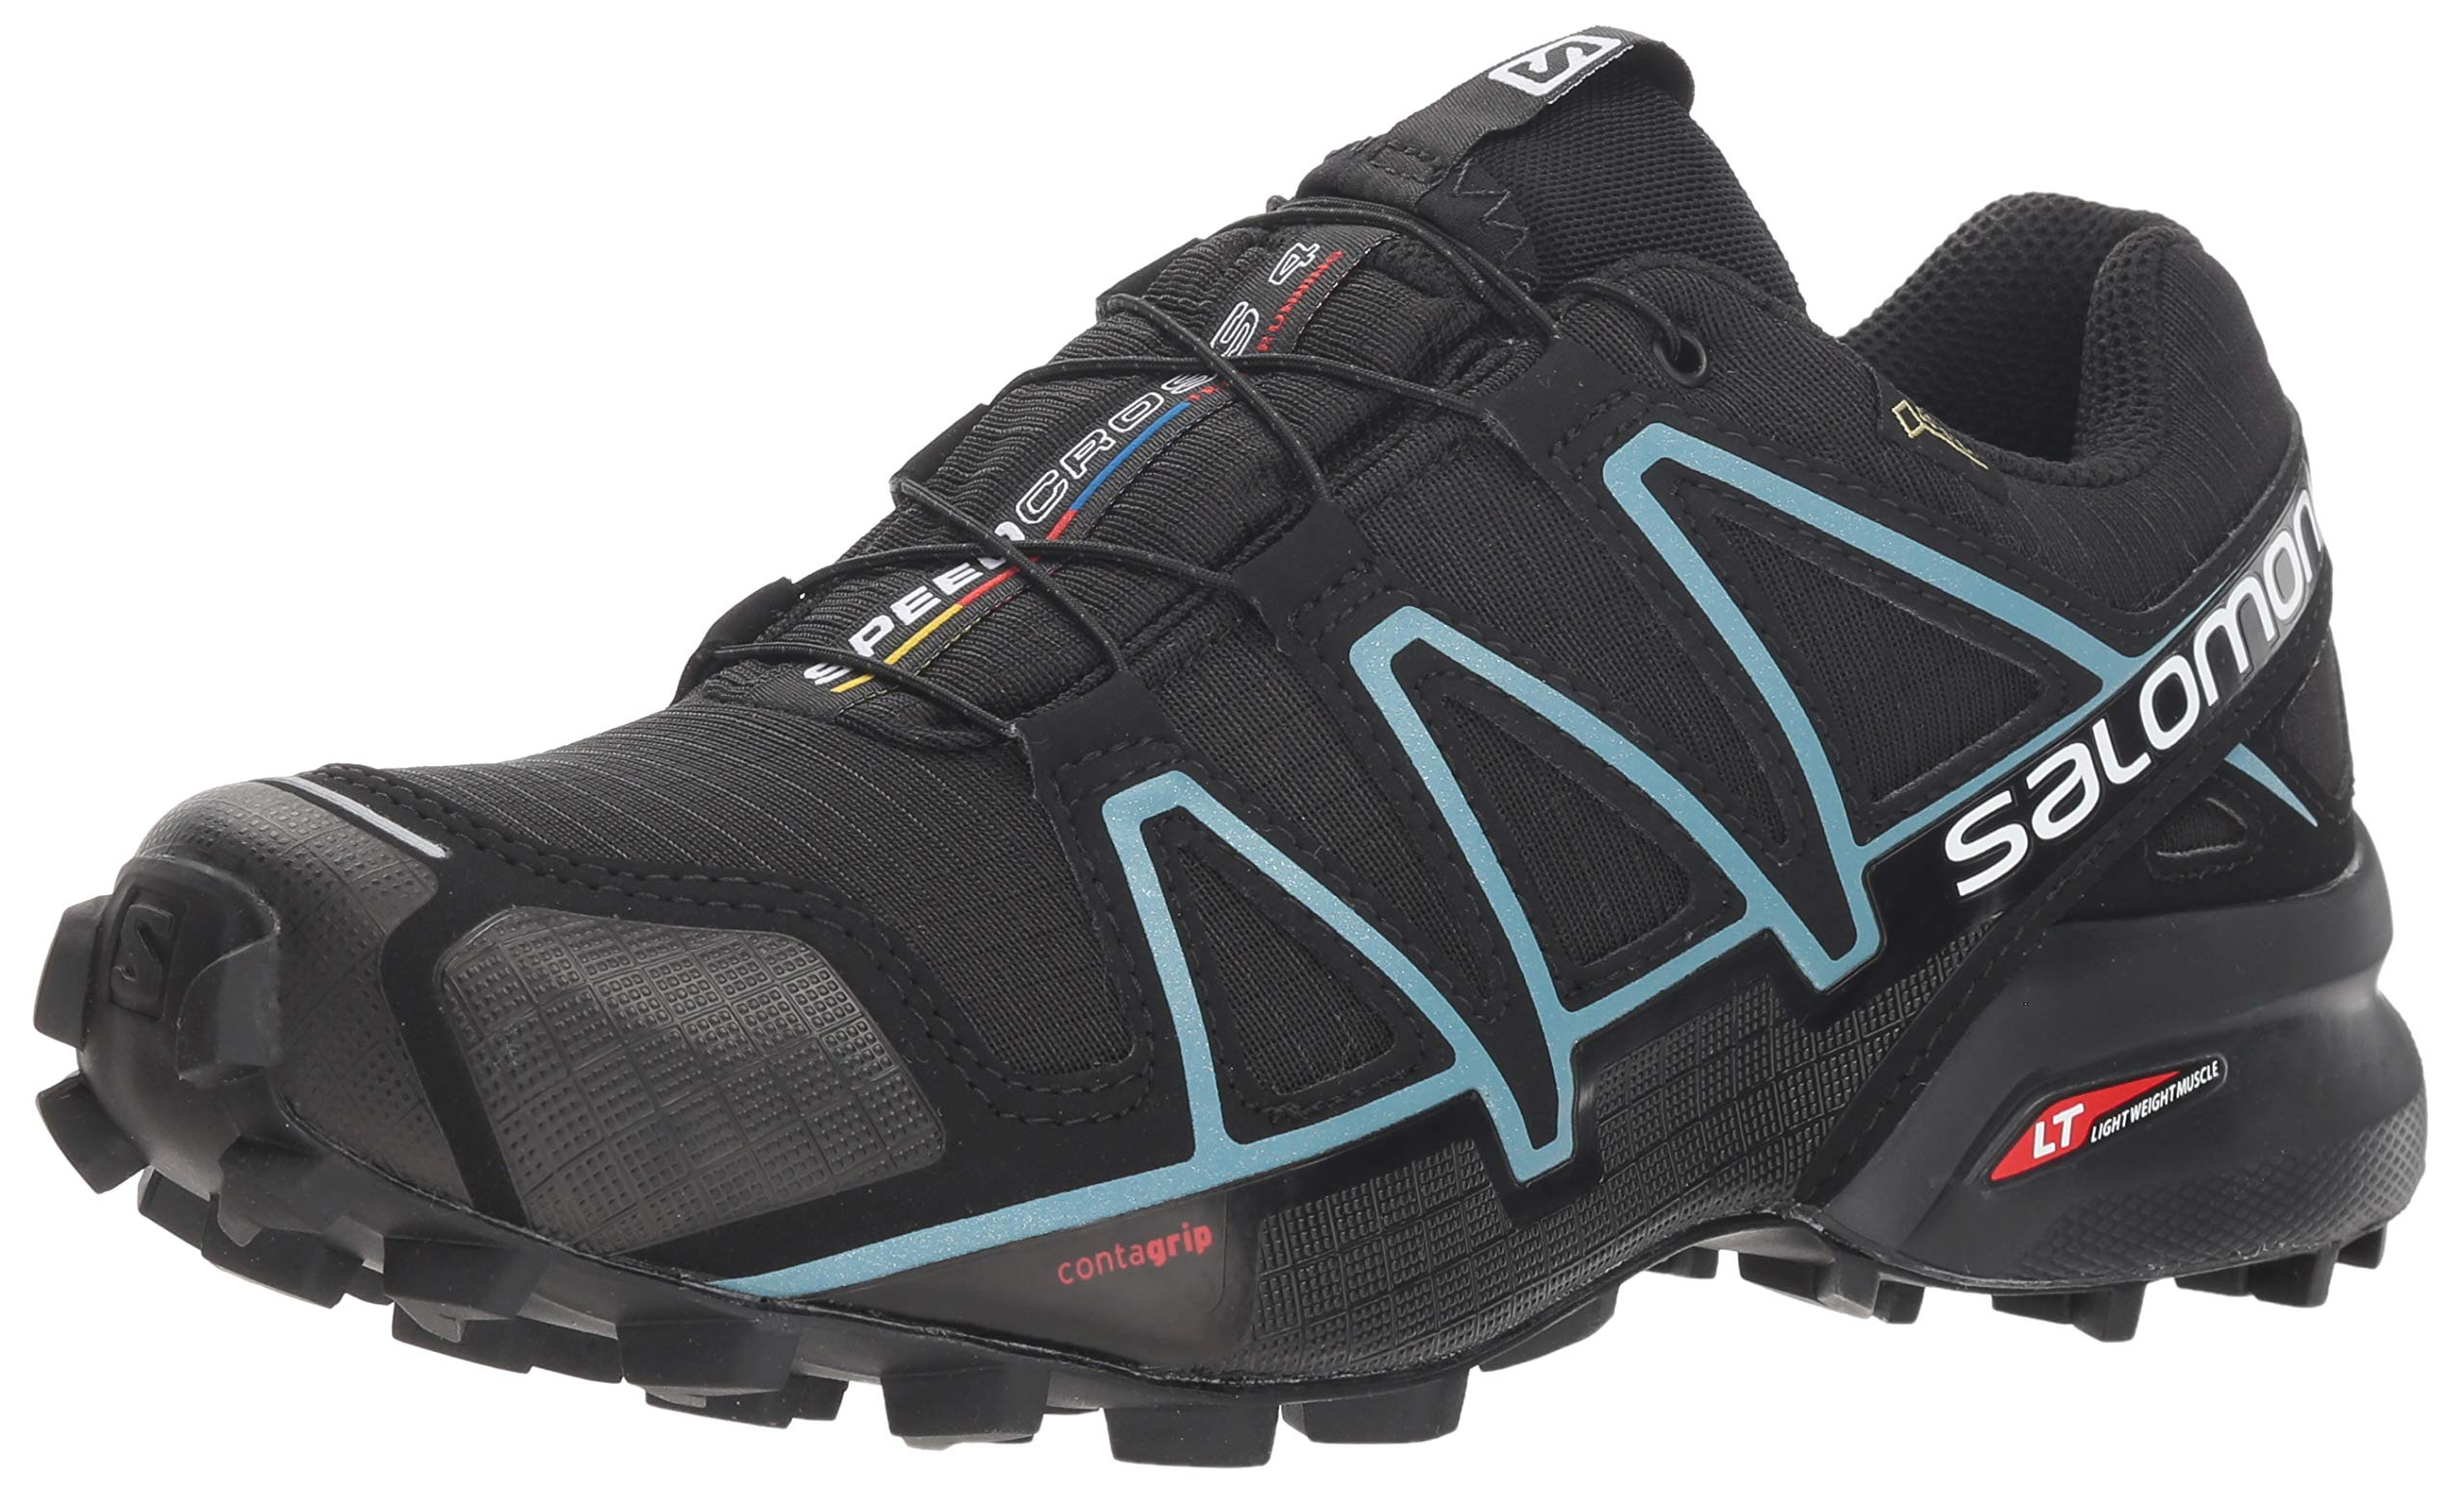 Salomon Women's Speedcross 4 GTX W Trail Runner, Black, 10.5 M US by Salomon